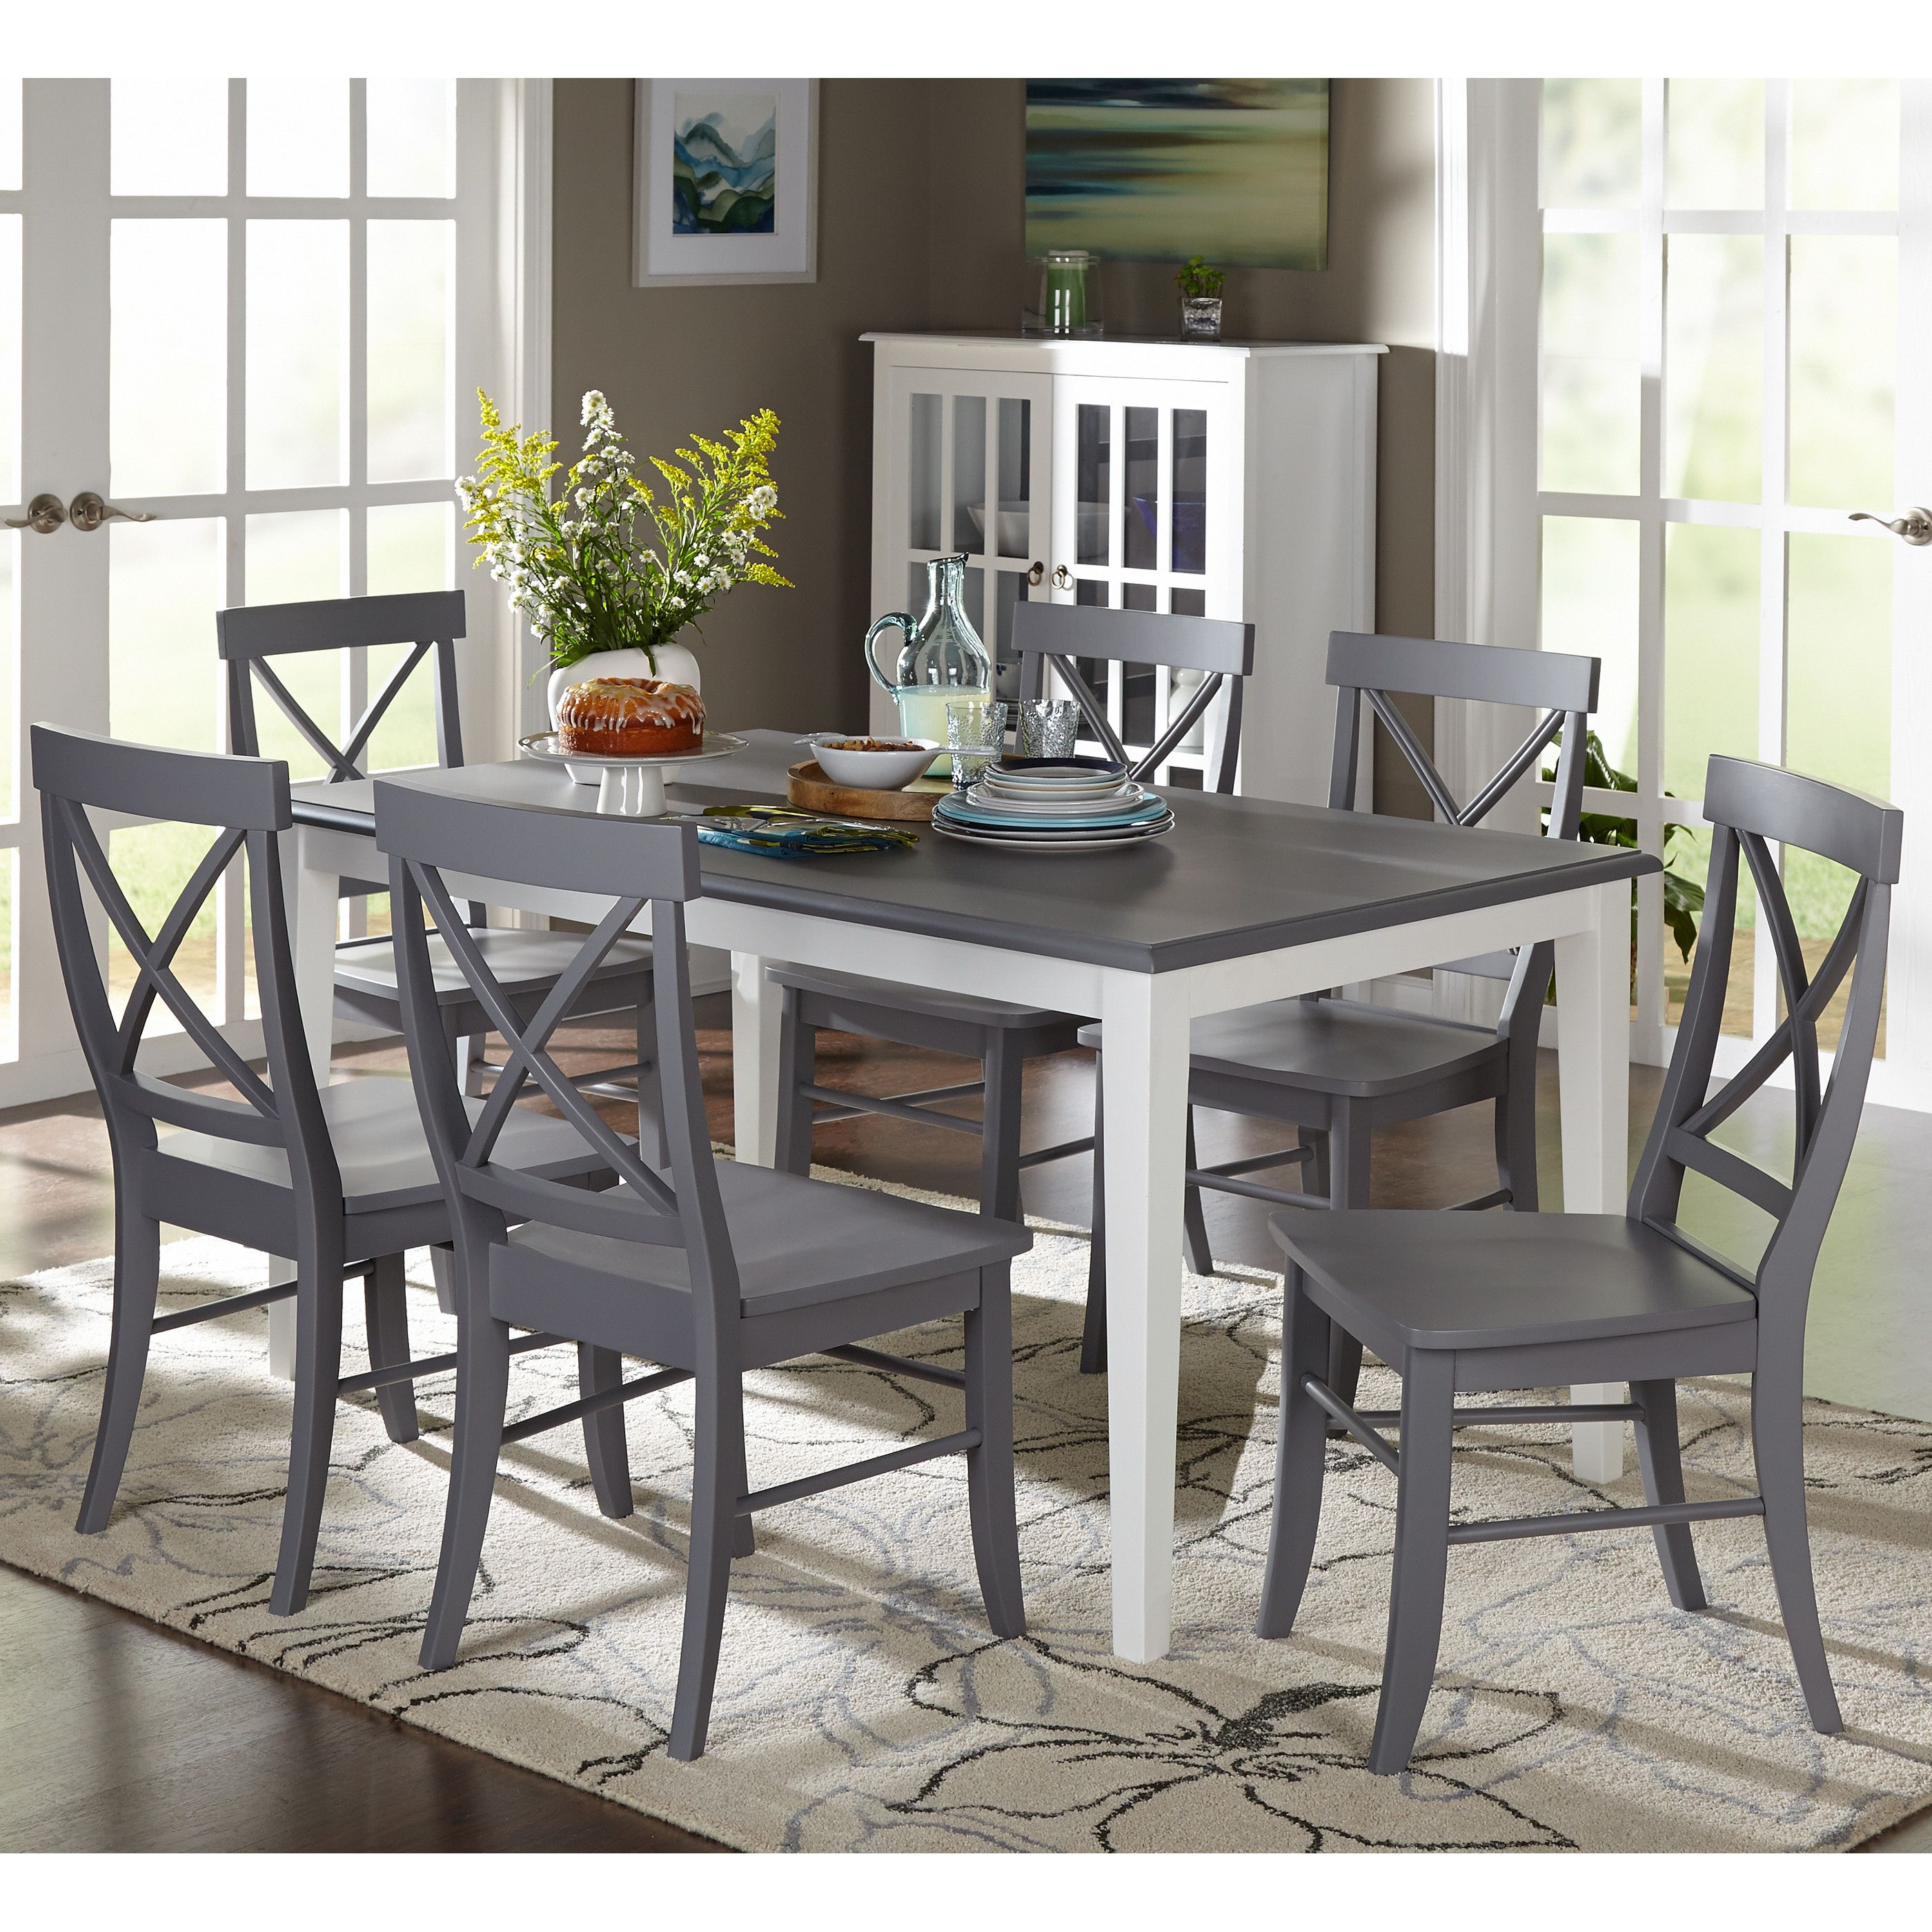 Kitchen bistro set  Shop Wayfair for Kitchen u Dining Room Sets to match every style and